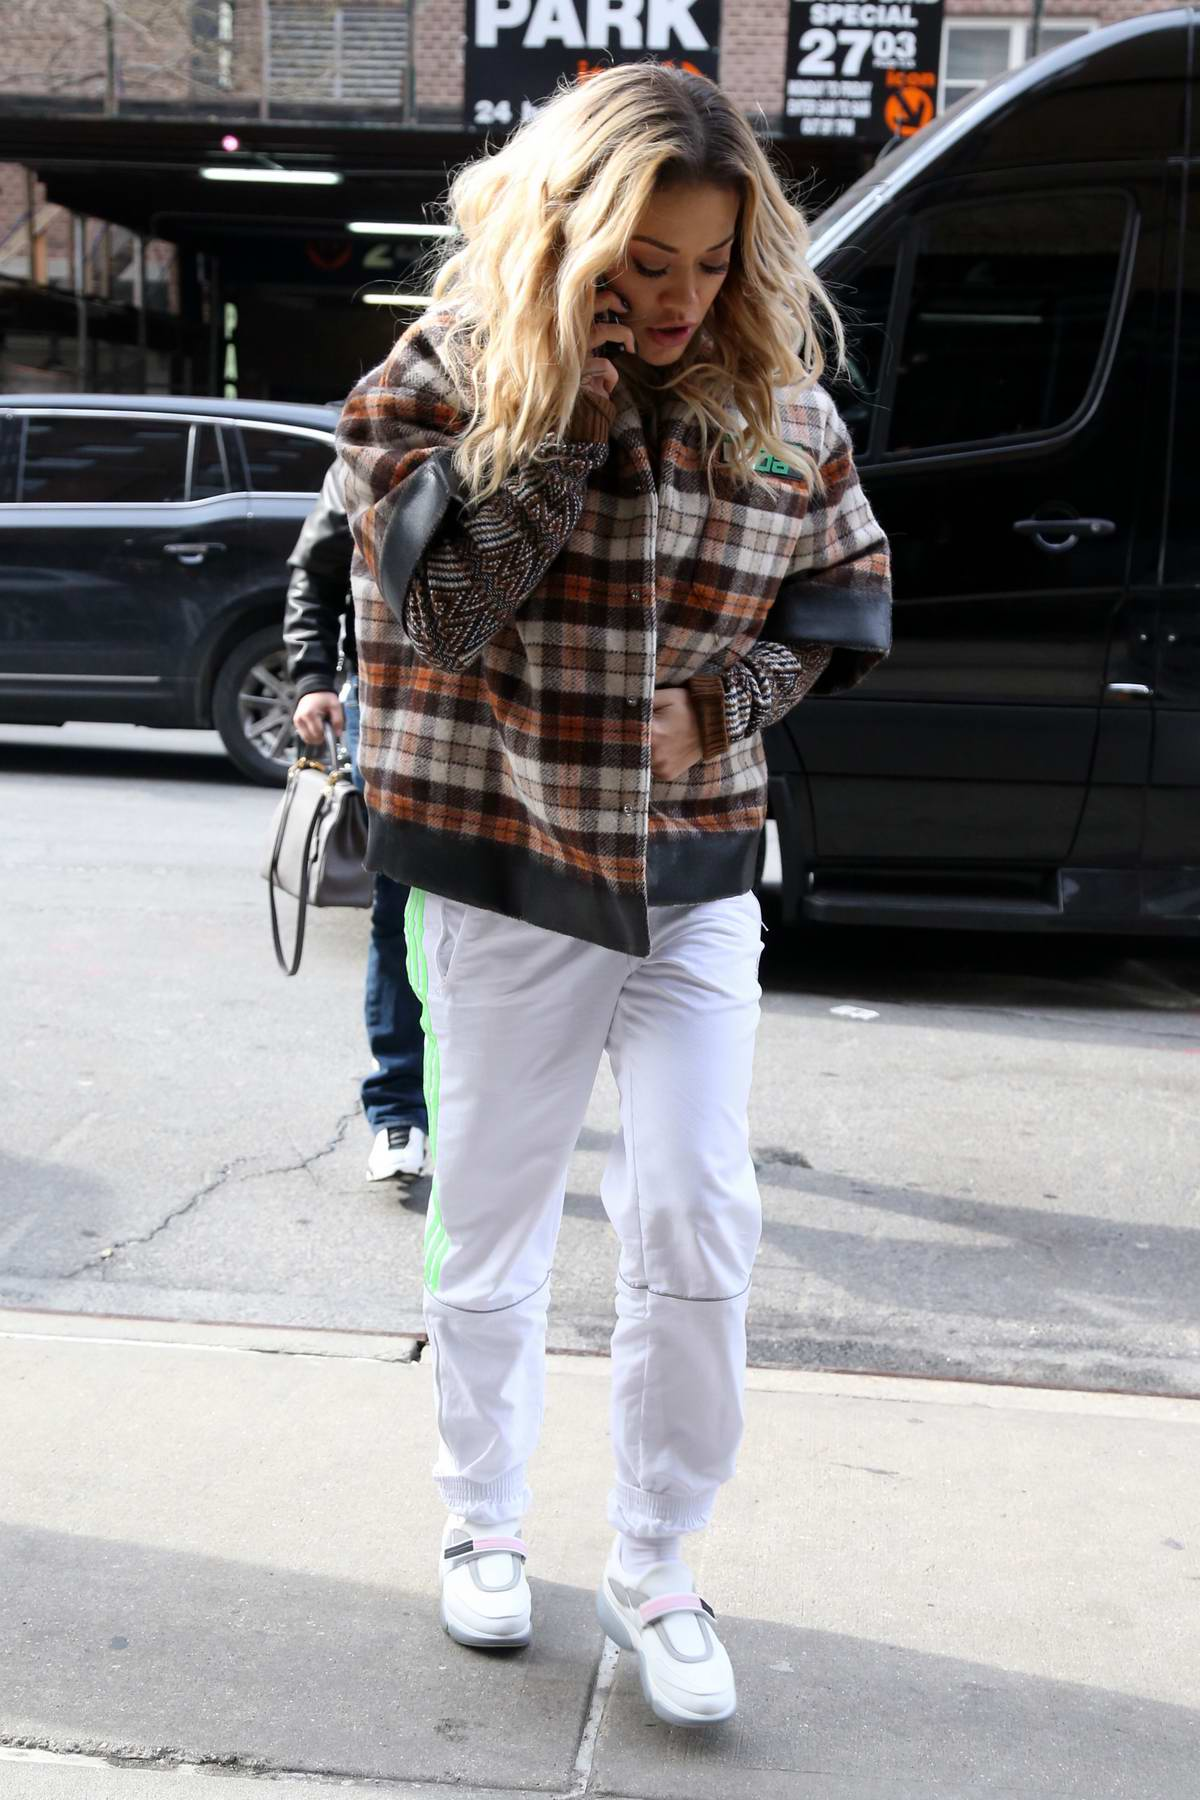 Rita Ora dons plaid as she arrives at The Greenwich Hotel in New York City